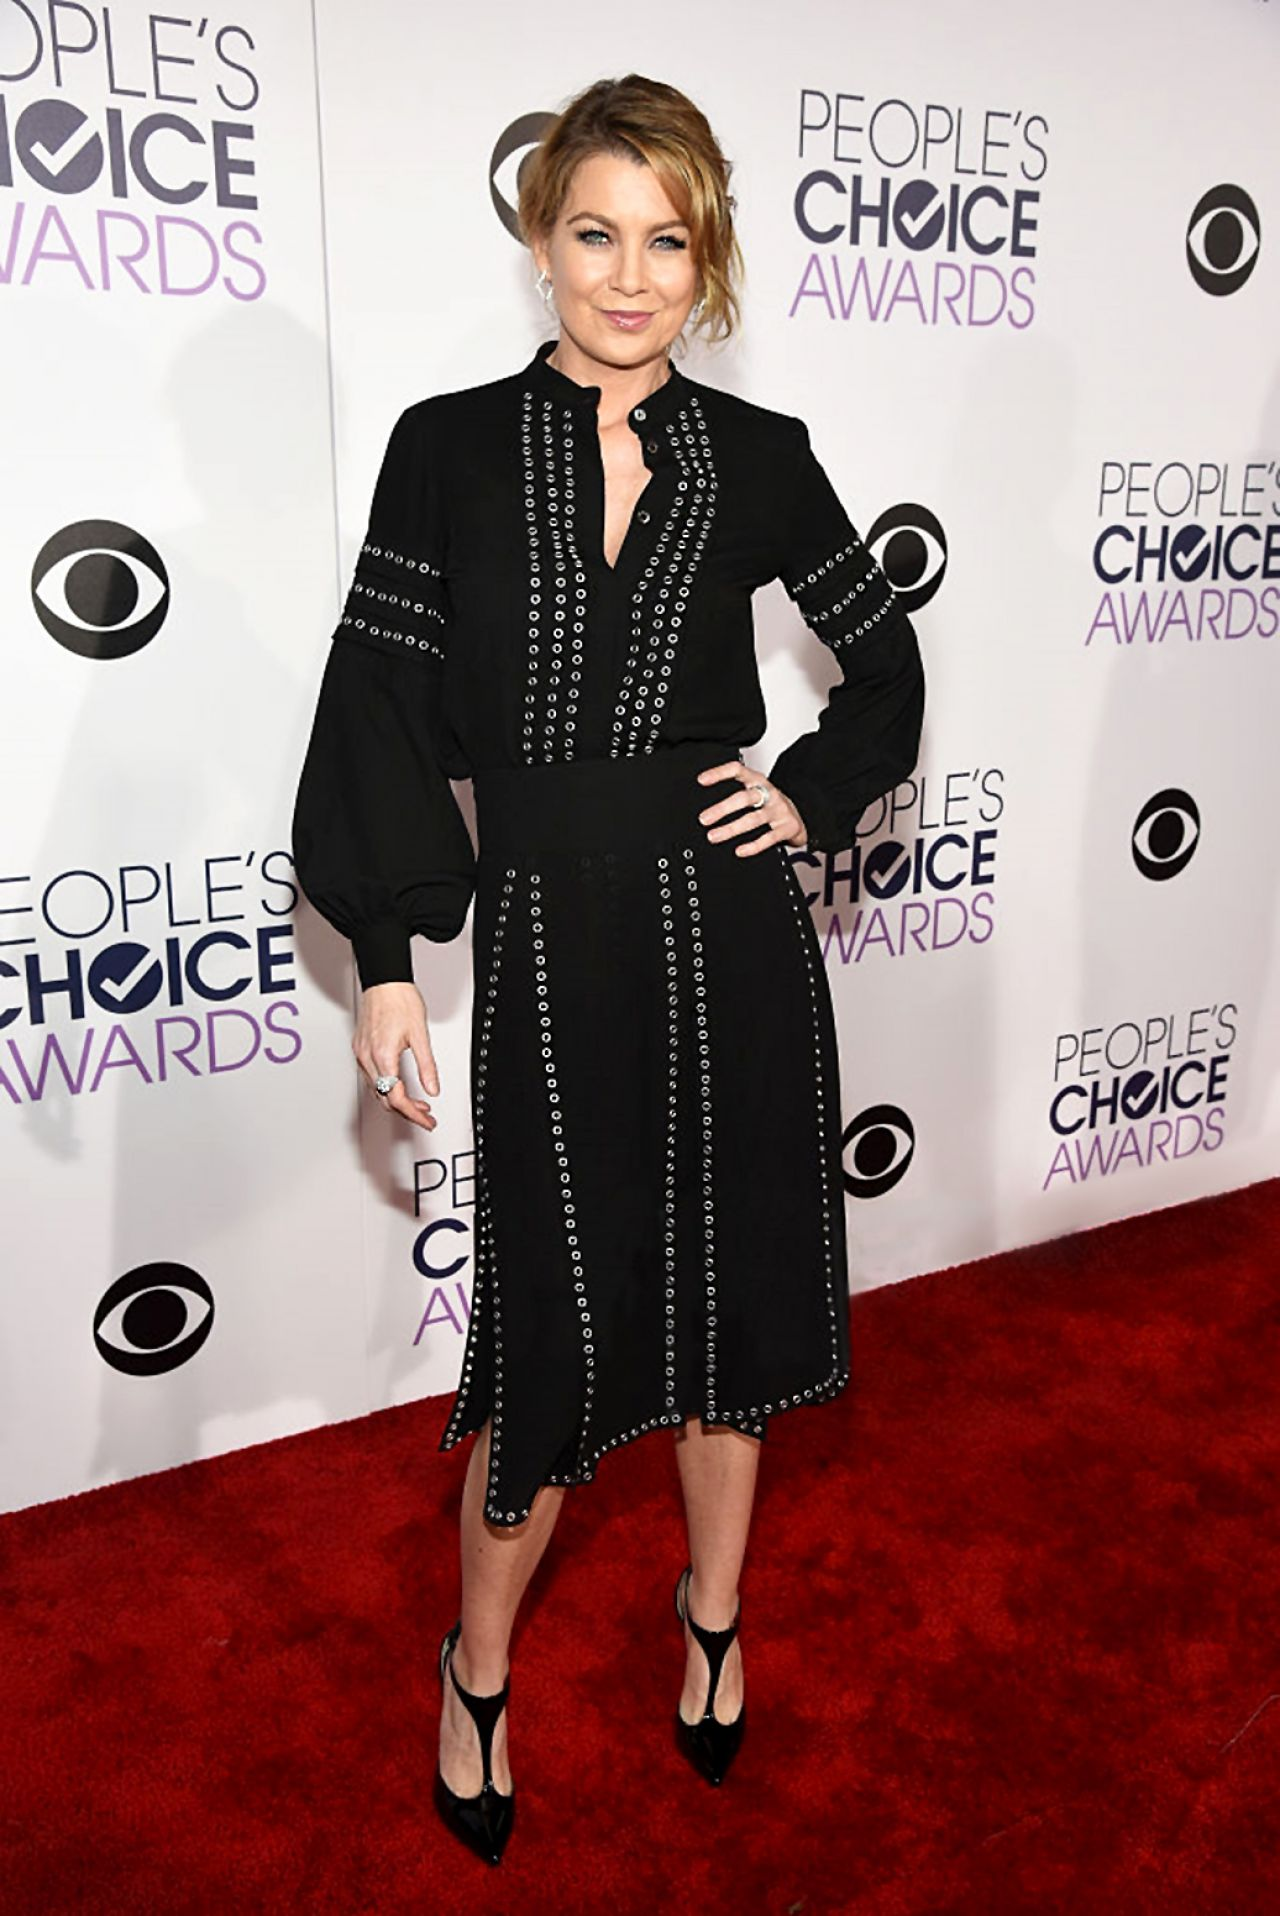 ellen-pompeo-2016-people-s-choice-awards-in-microsoft-theater-in-los-angeles-1